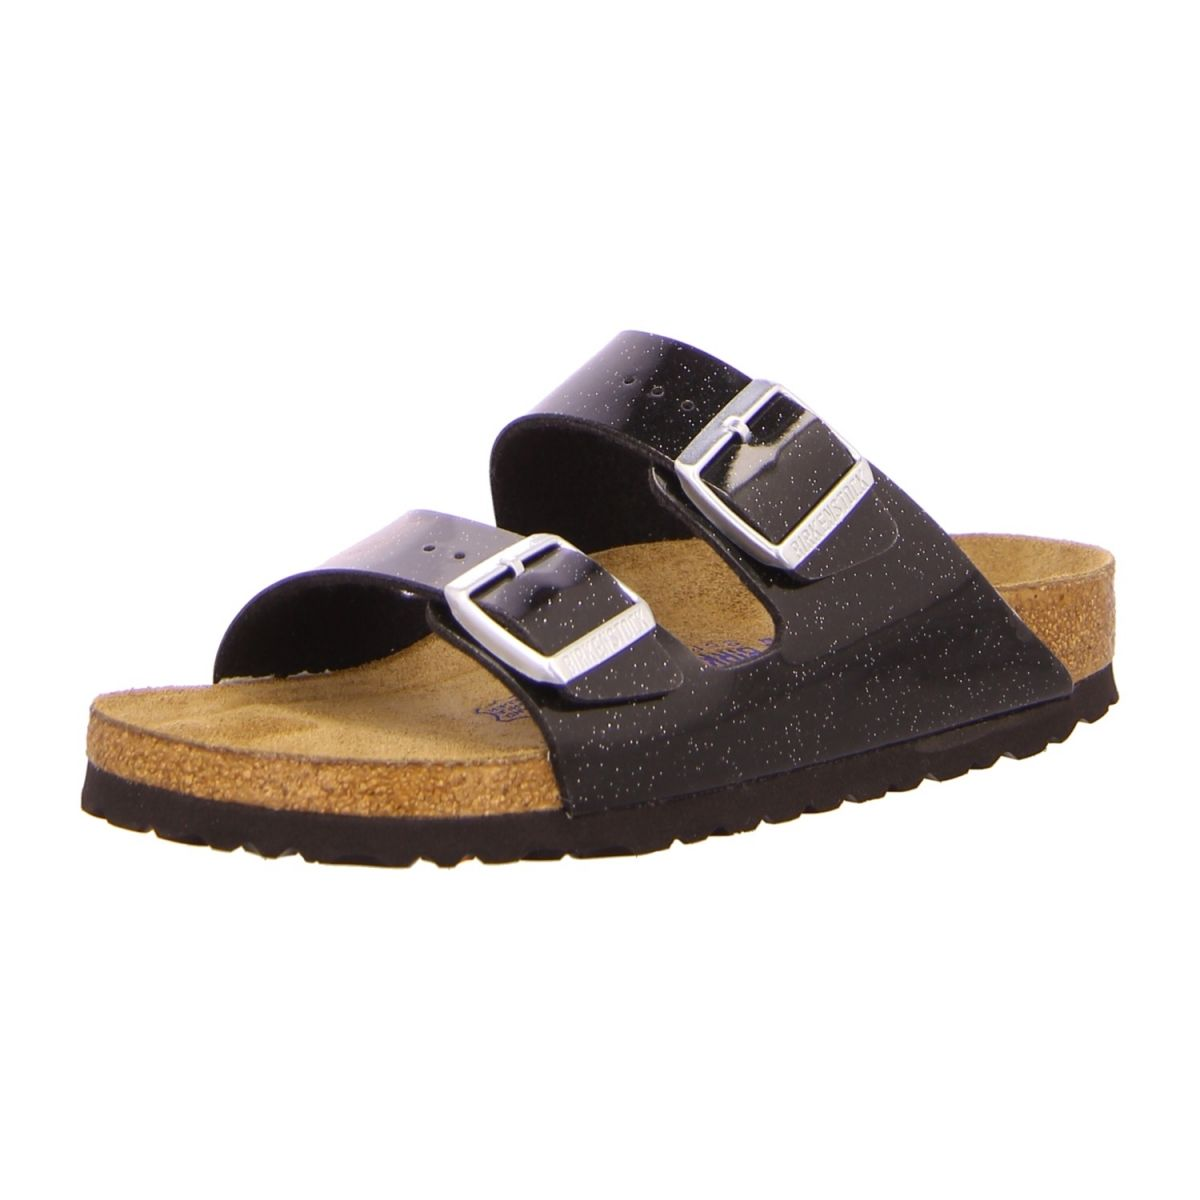 7bedc1e27538e8 NEU  Birkenstock Pantoletten Arizona - 057633 - magic galaxy black ...